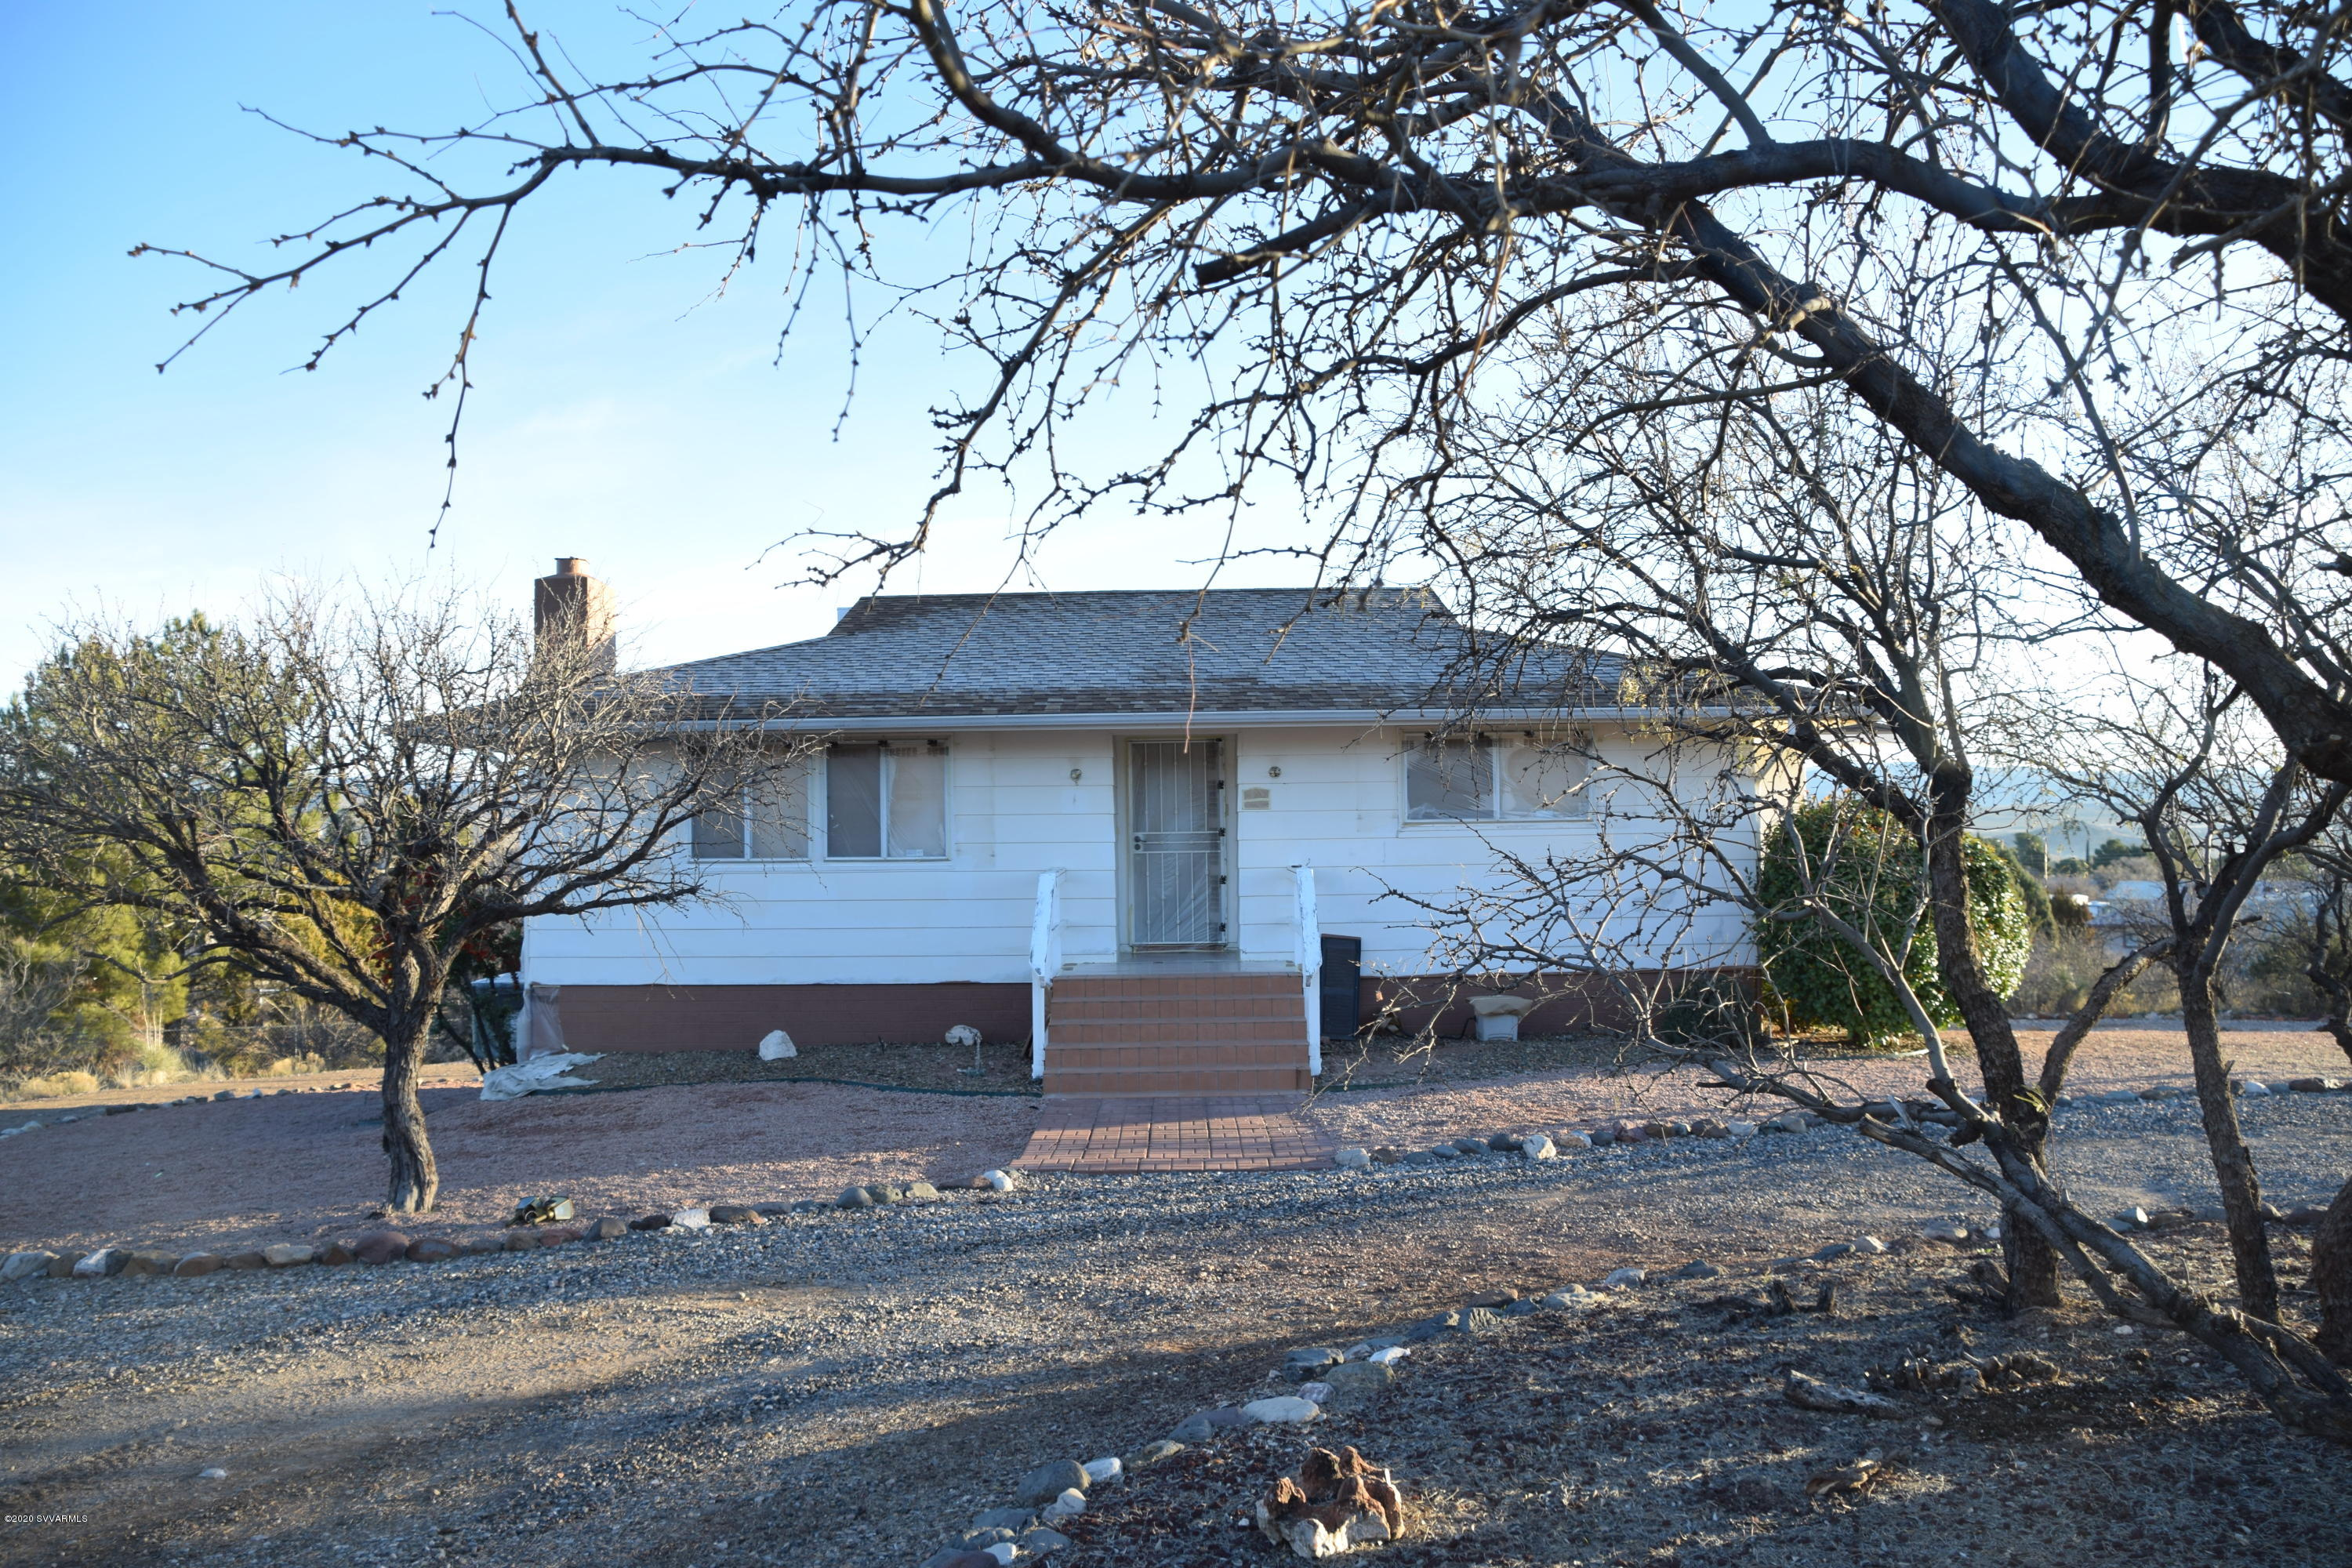 714 E Fir St Cottonwood, AZ 86326